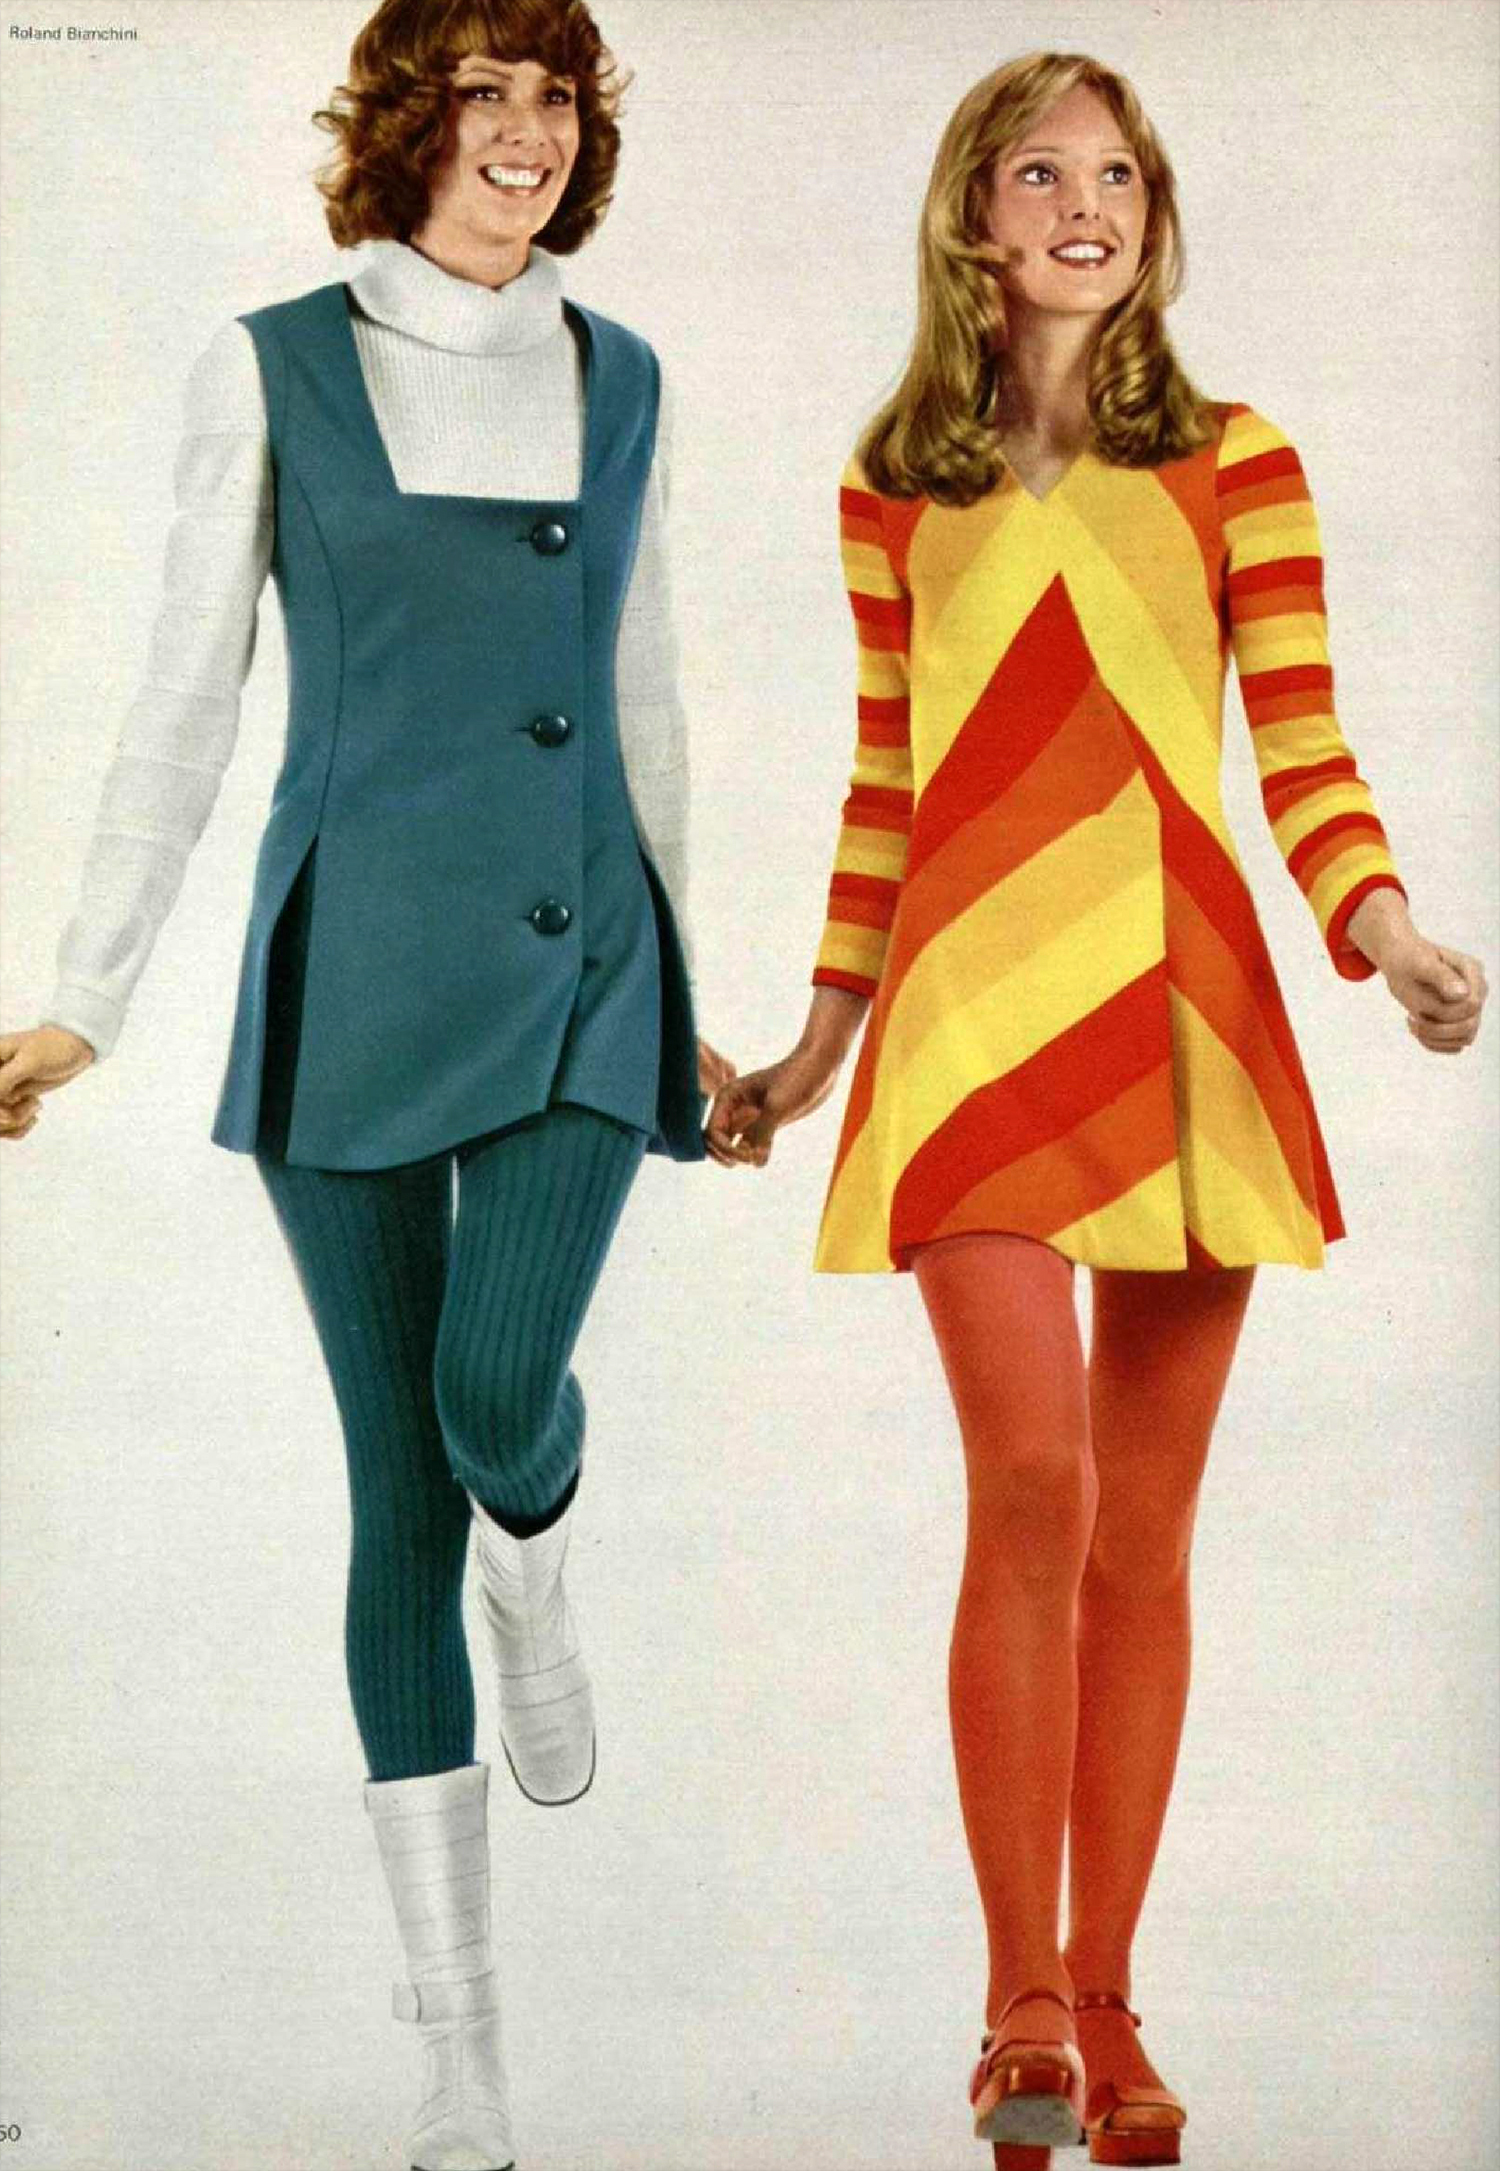 French Fashion 71 Stunning Women S Styles From 1971 France